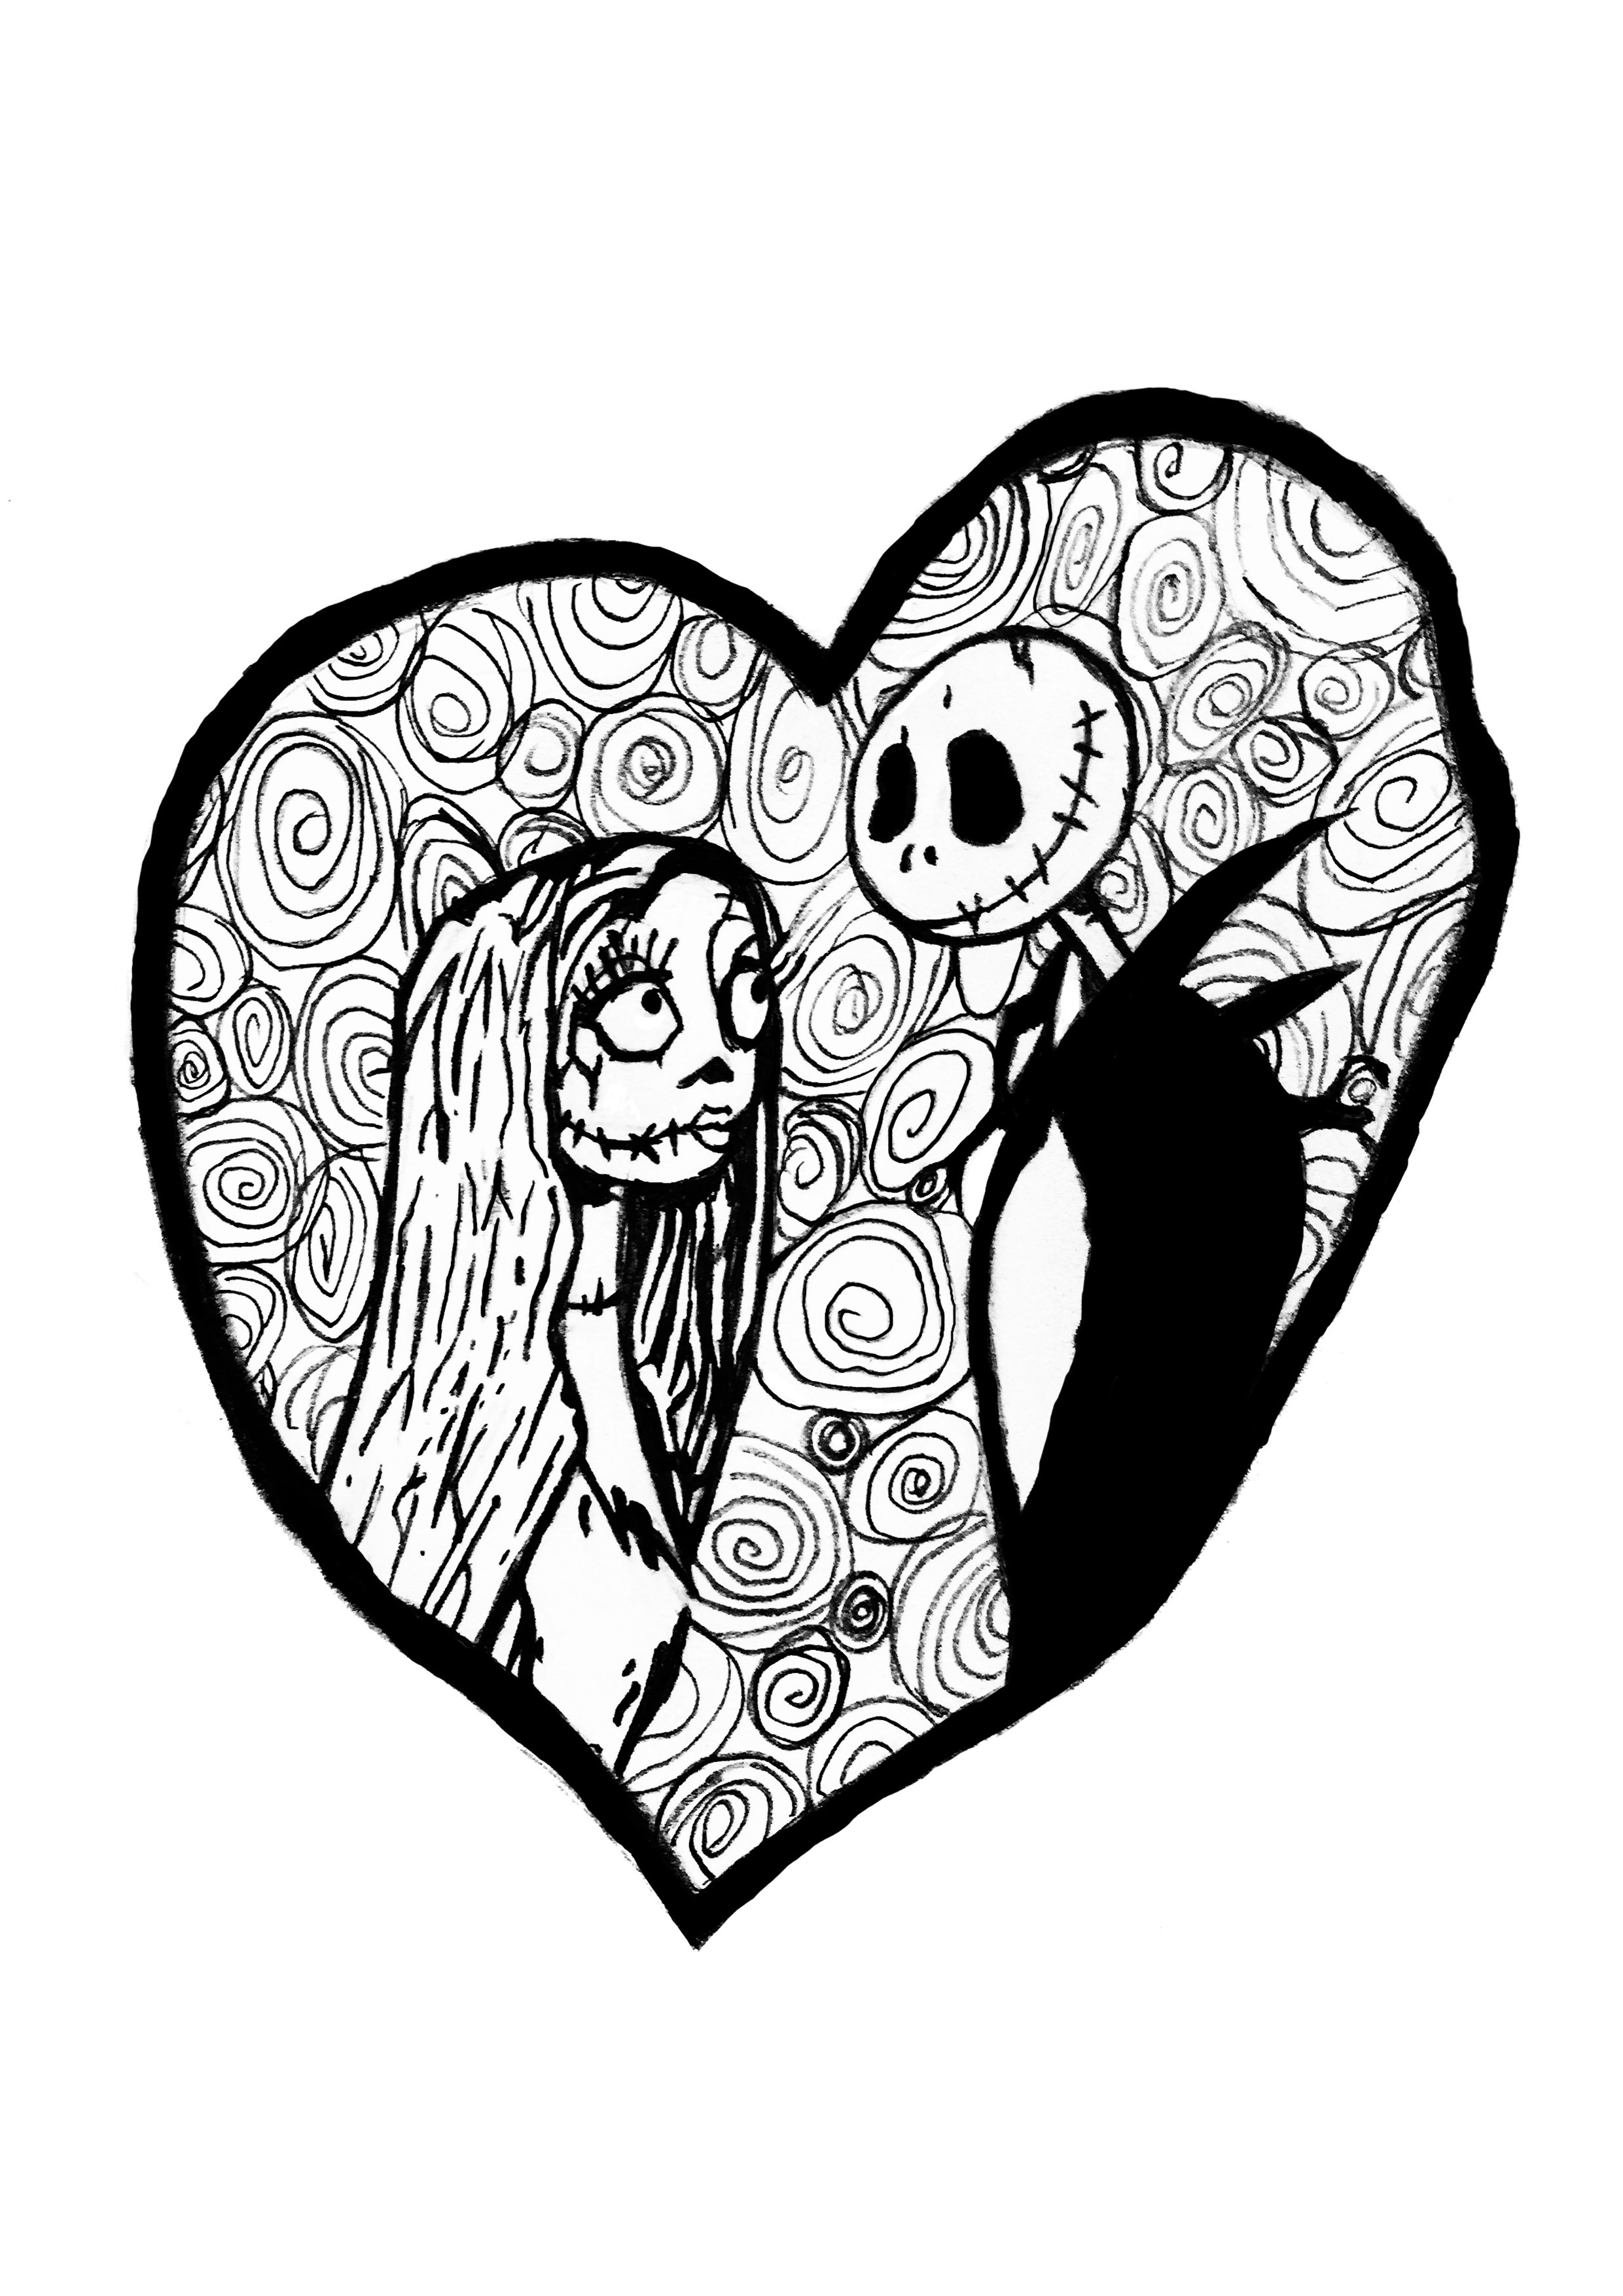 Simple The Nightmare Before Christmas coloring page for children